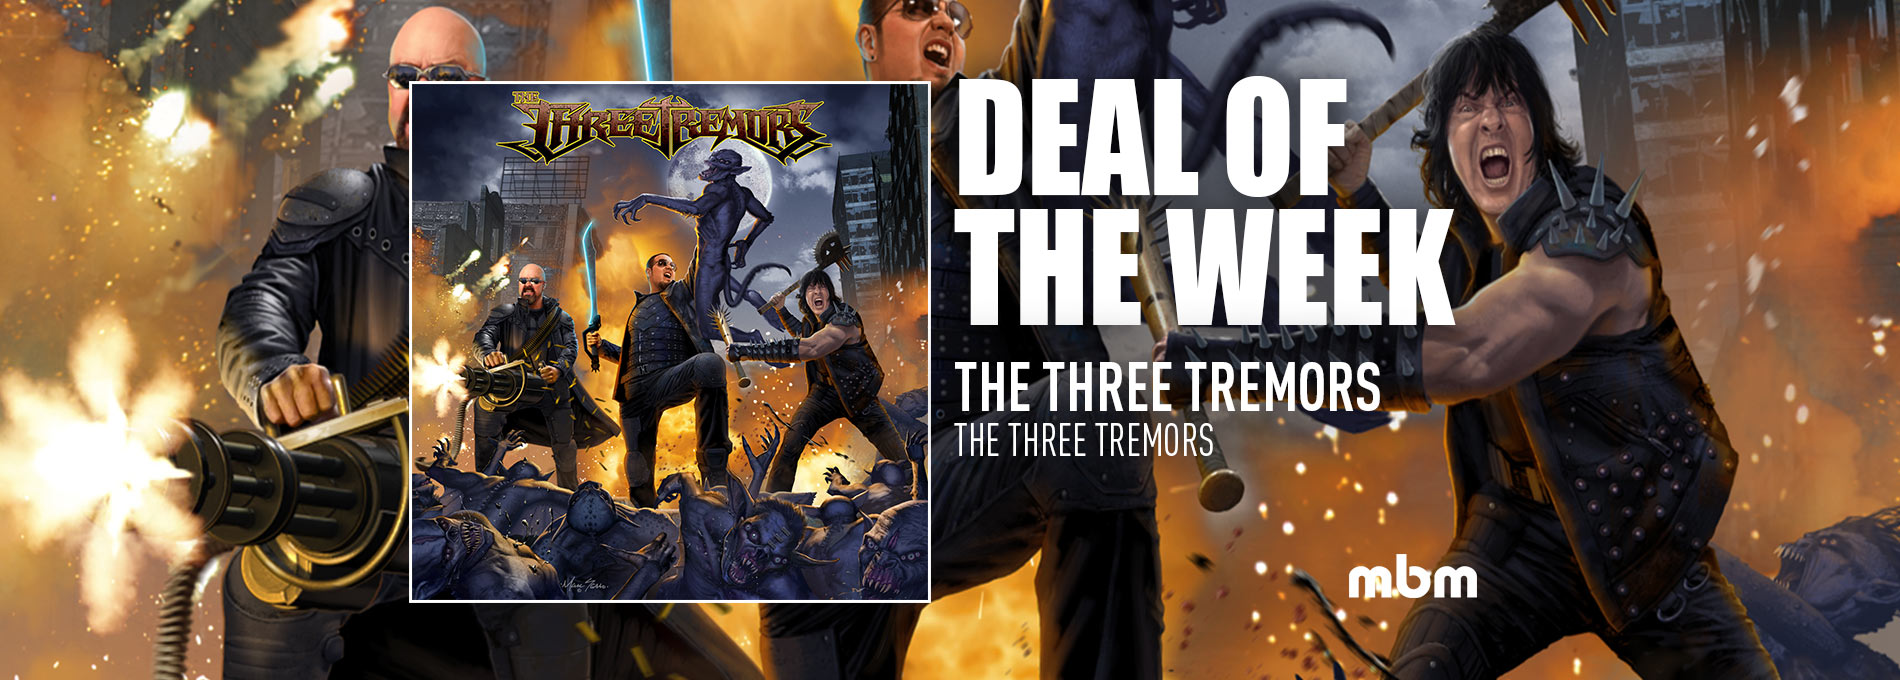 Deal Of The Week: THE THREE TREMORS - The Three Tremors